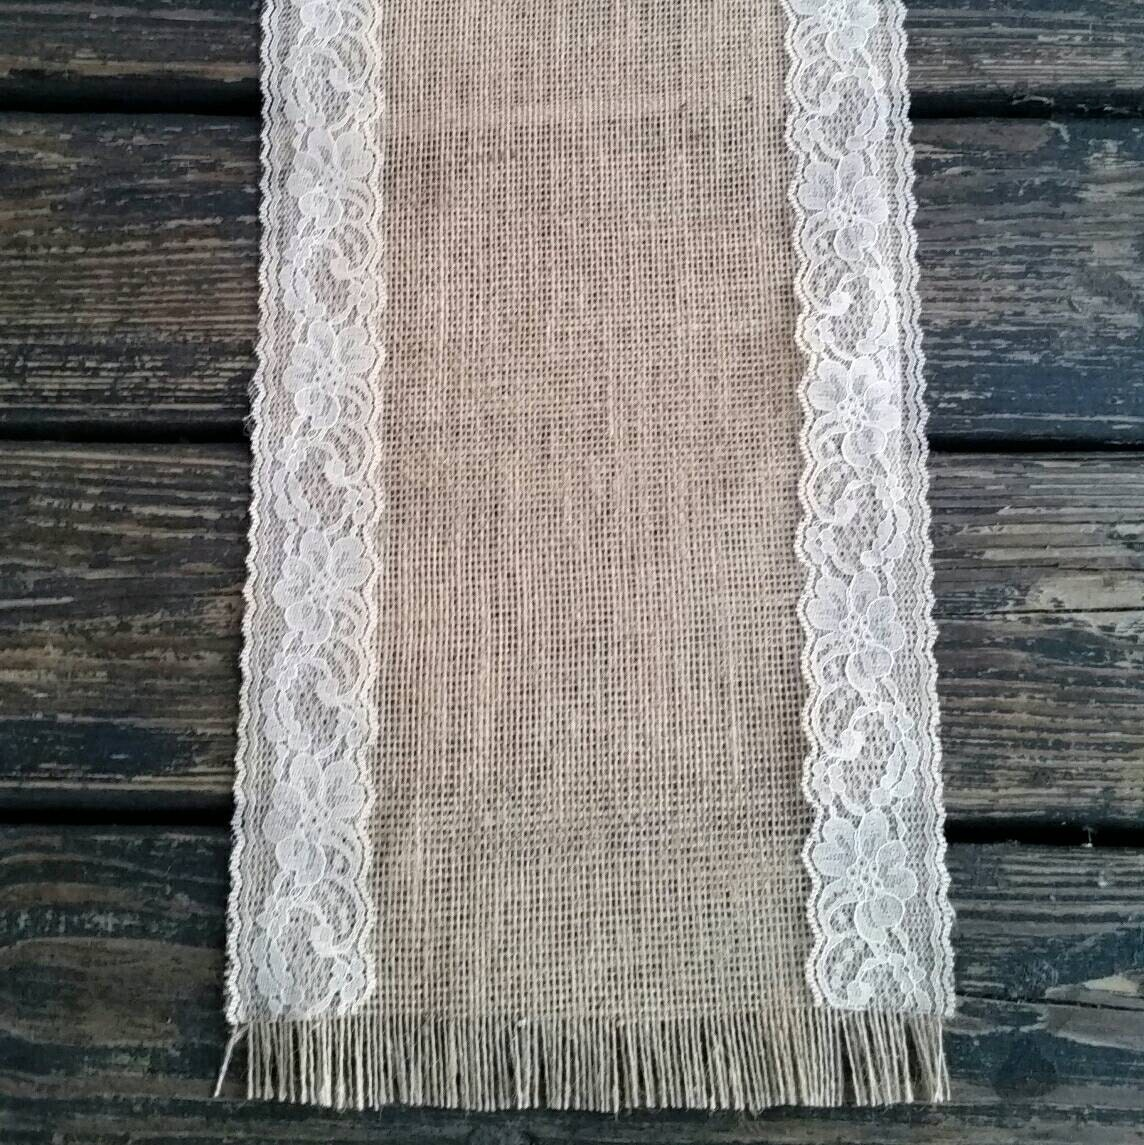 Table Runner 10 Inch Wide By 72 Inch Long Lace And Burlap